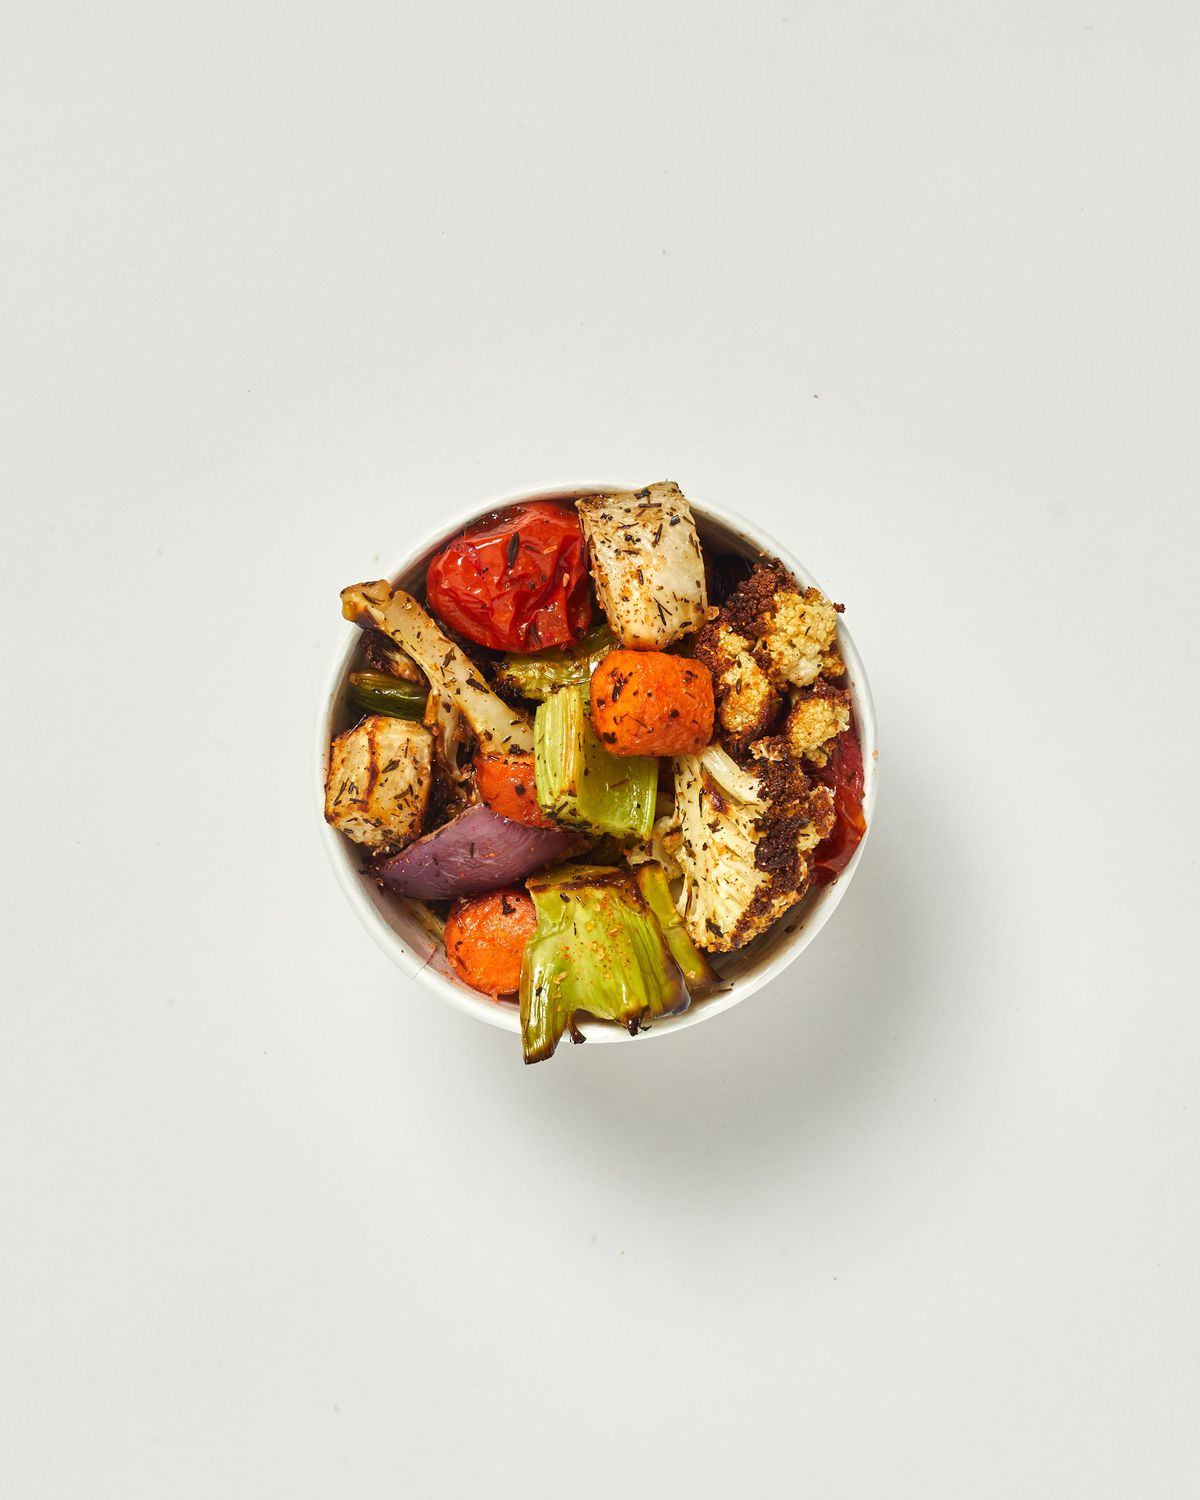 Chopped roasted vegetable medley CAULIFLOWER, CARROT, RED ONION, CELERY, TURNIP, CHERRY TOMATOES